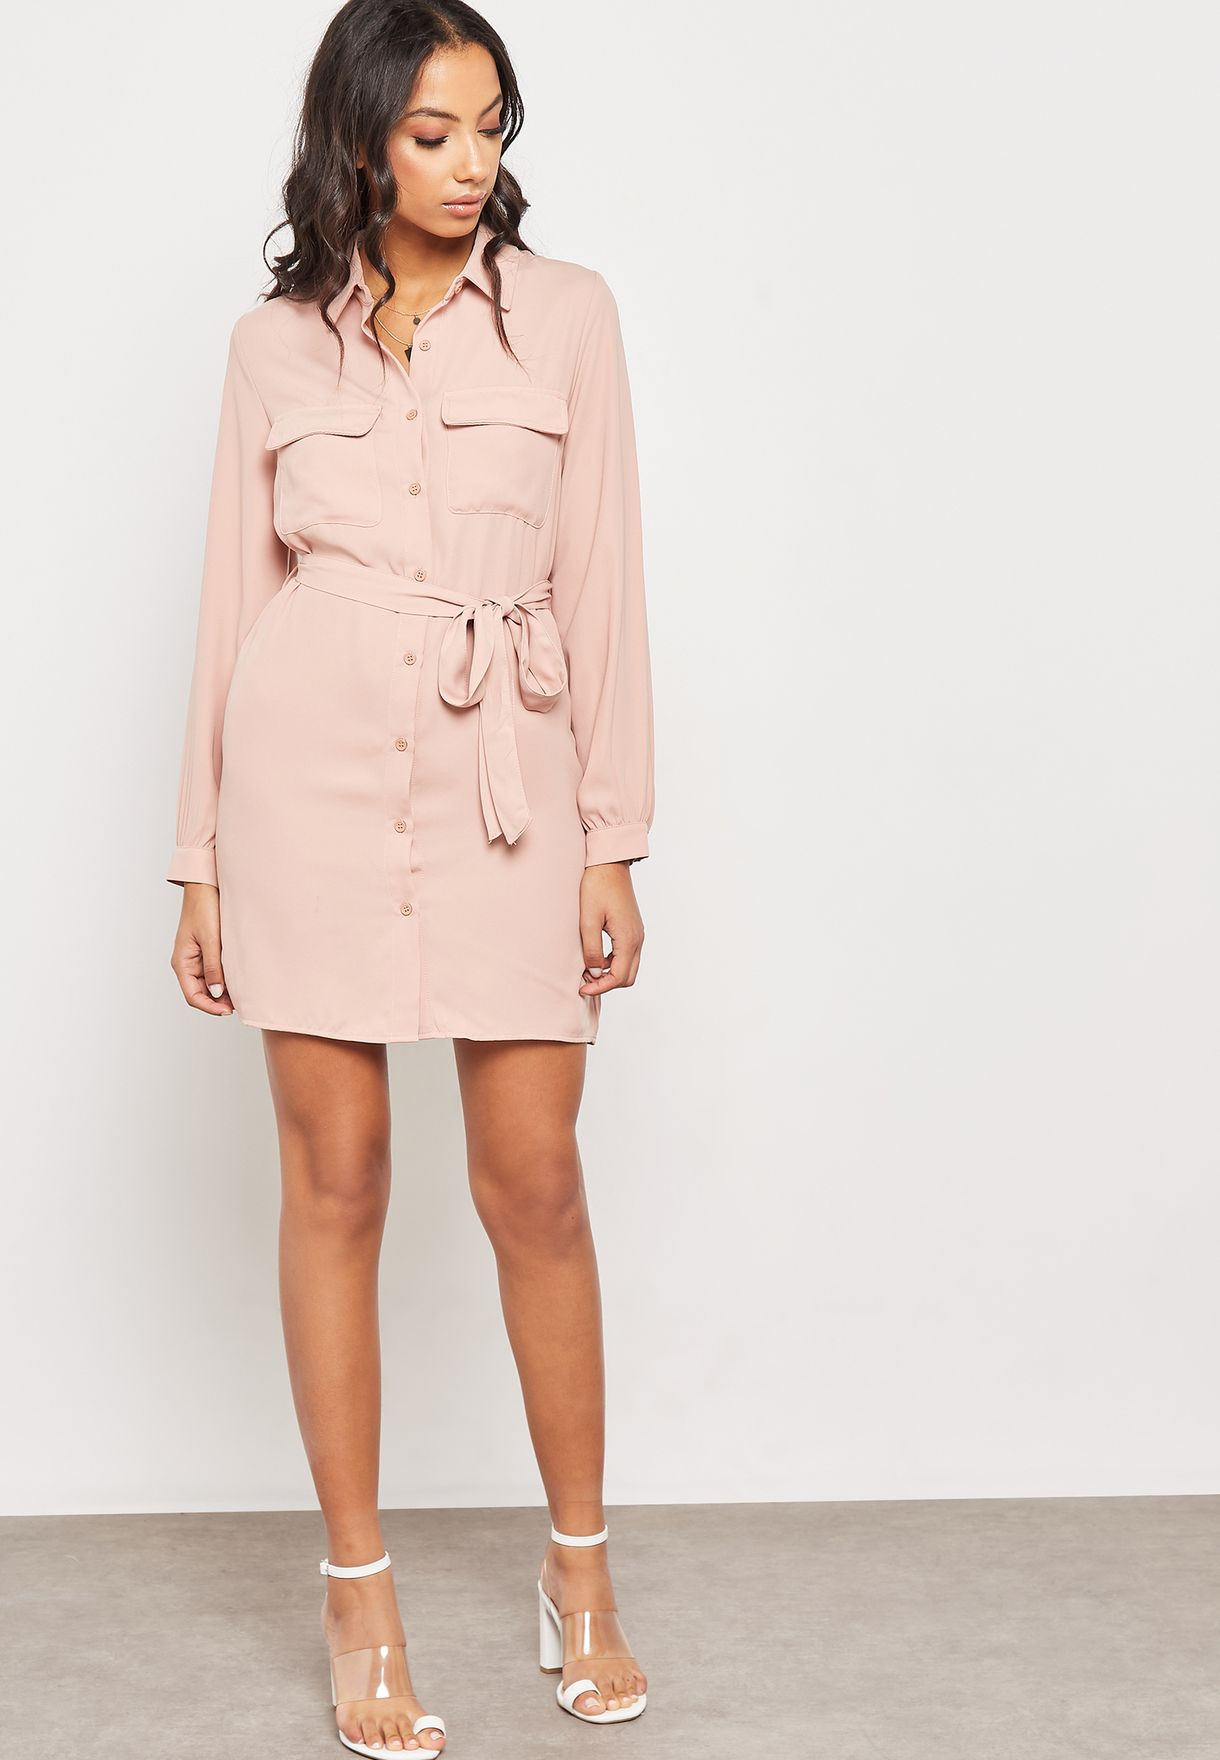 a6f30ca1c57 Shop Forever 21 pink Long Sleeve Shirt Dress 301081 for Women in UAE ...